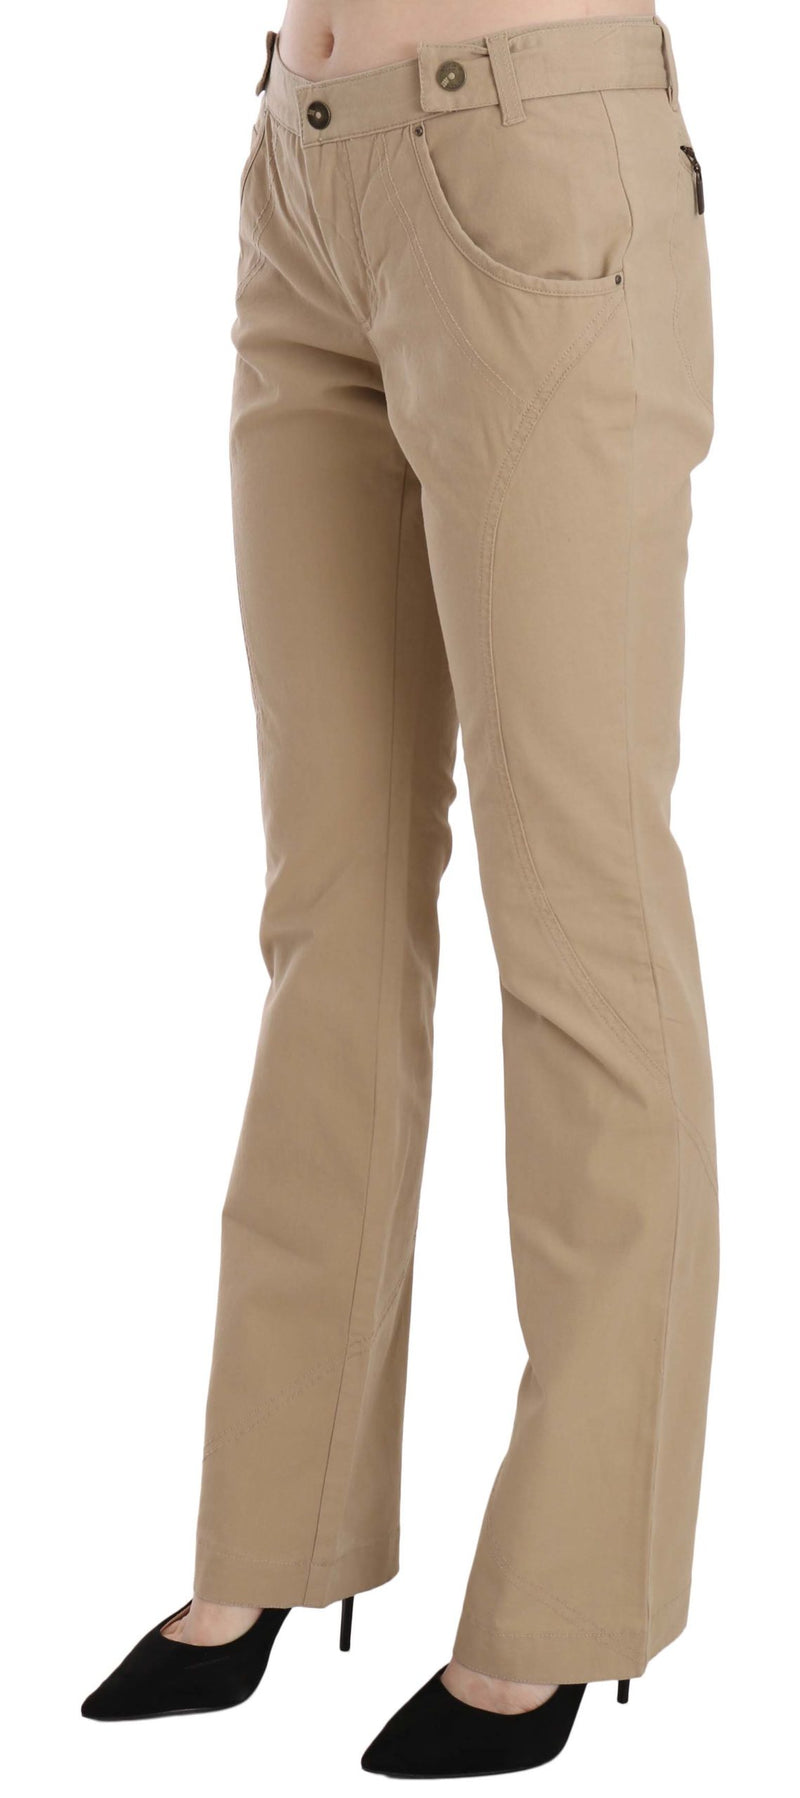 Beige Cotton Mid Waist Straight Trousers Pants